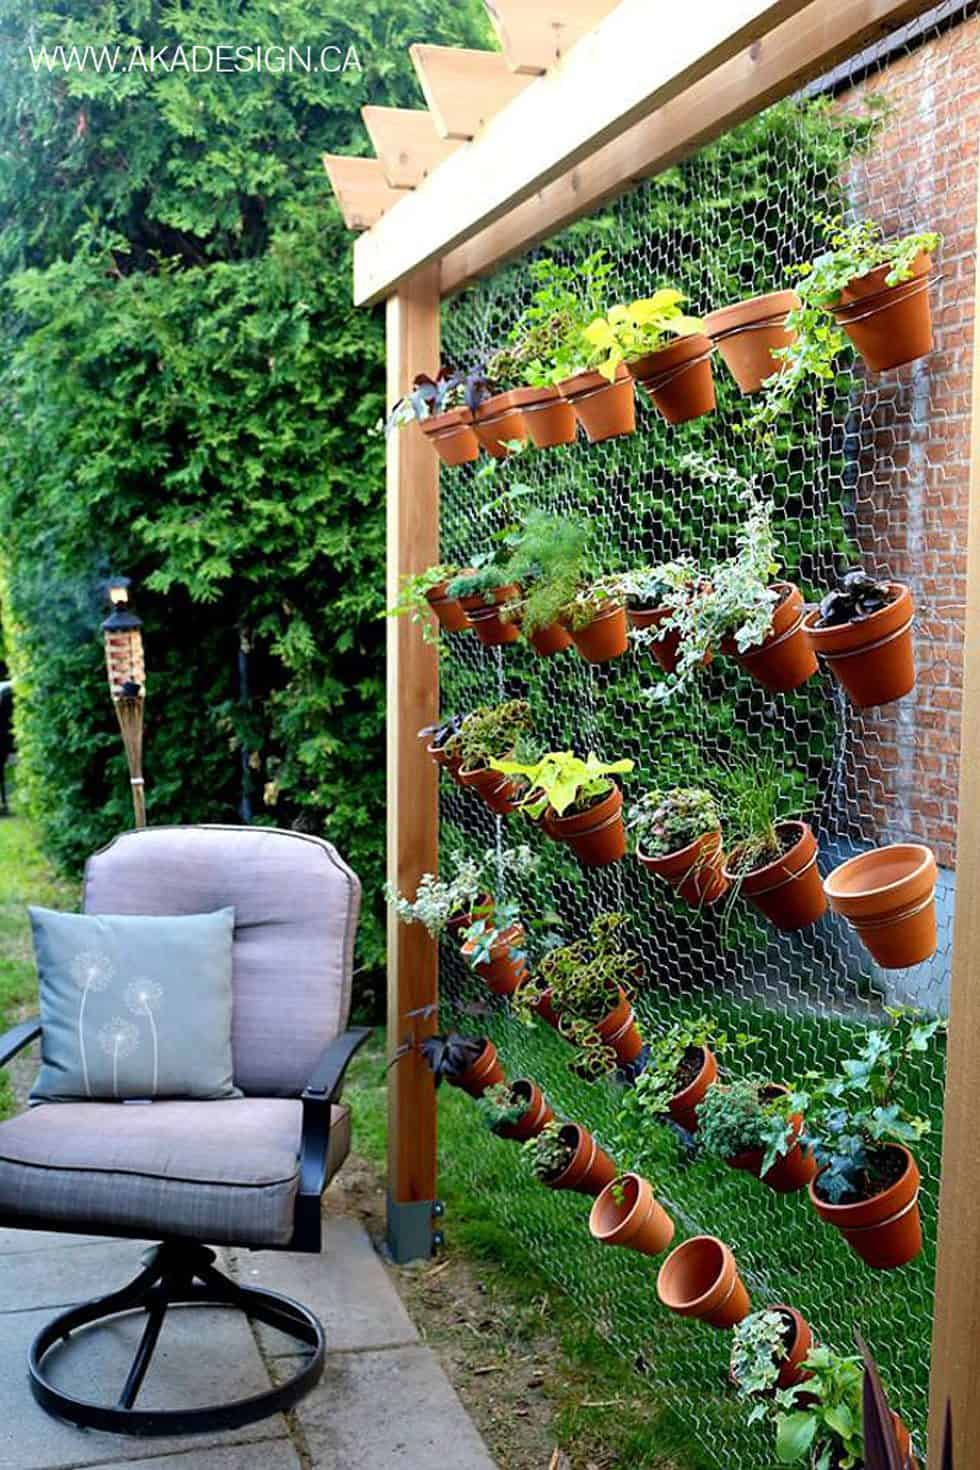 02-create-an-airy-garden-backdrop-with-simple-chicken-wire-vertical-gardens